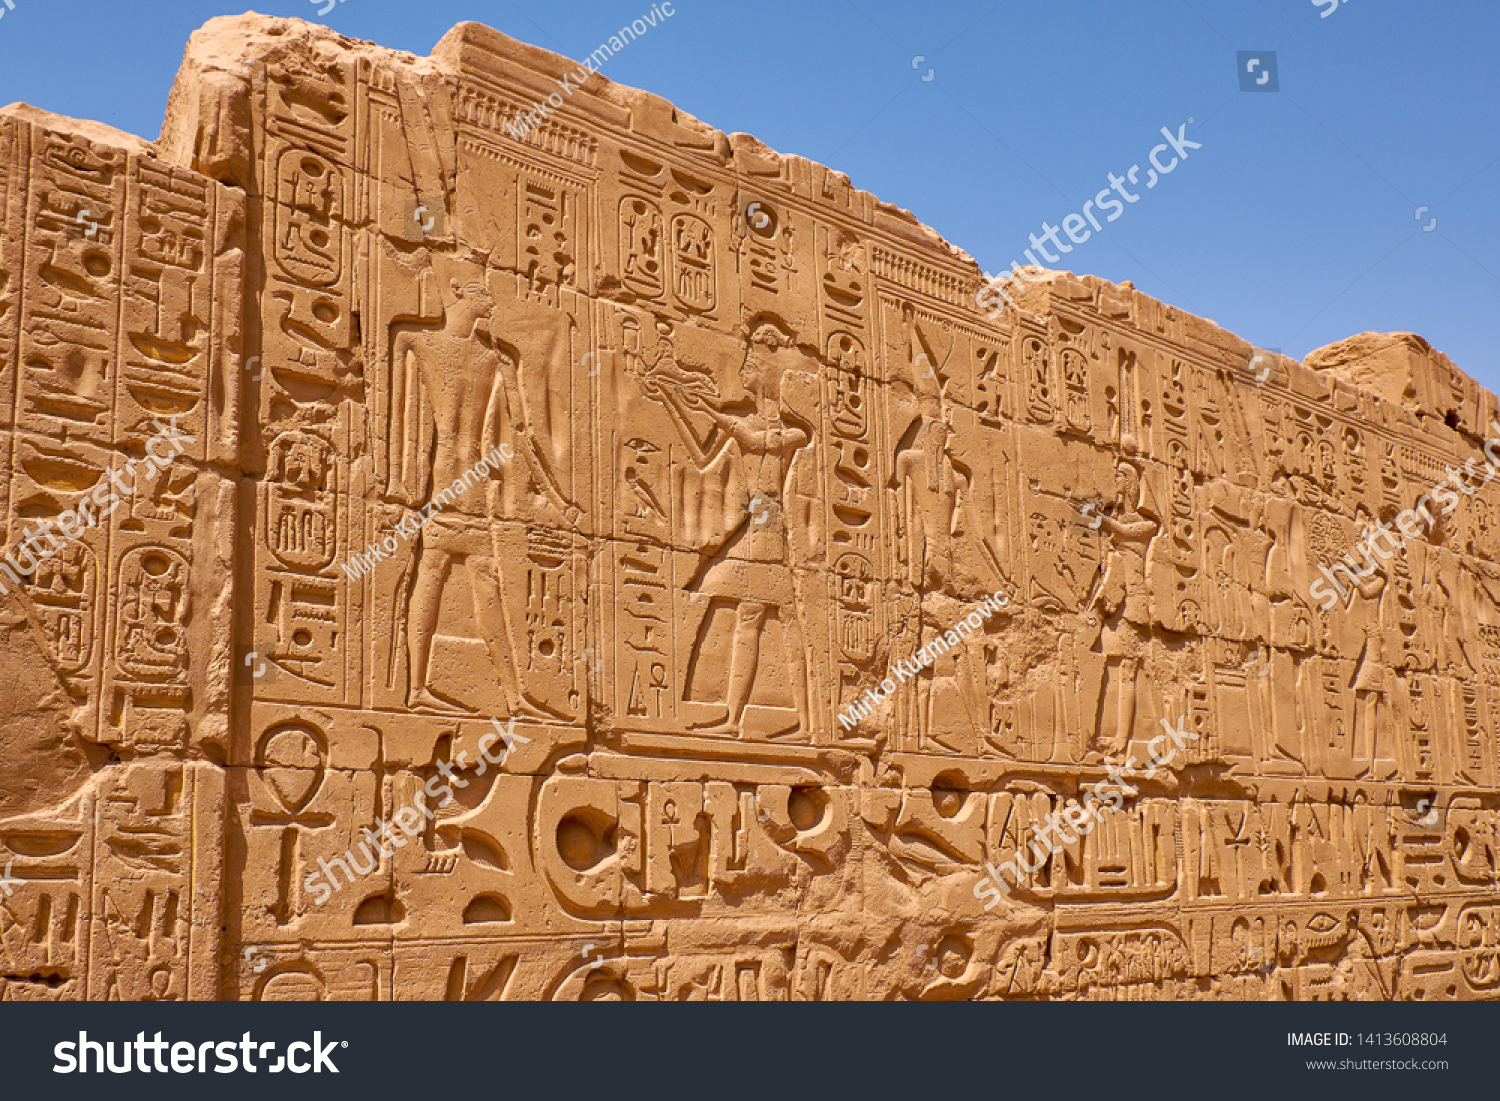 Relief details and Egyptian hieroglyphs at Karnak temple complex and Karnak Open Air Museum (about 1250 BC), Luxor, Egypt #1413608804